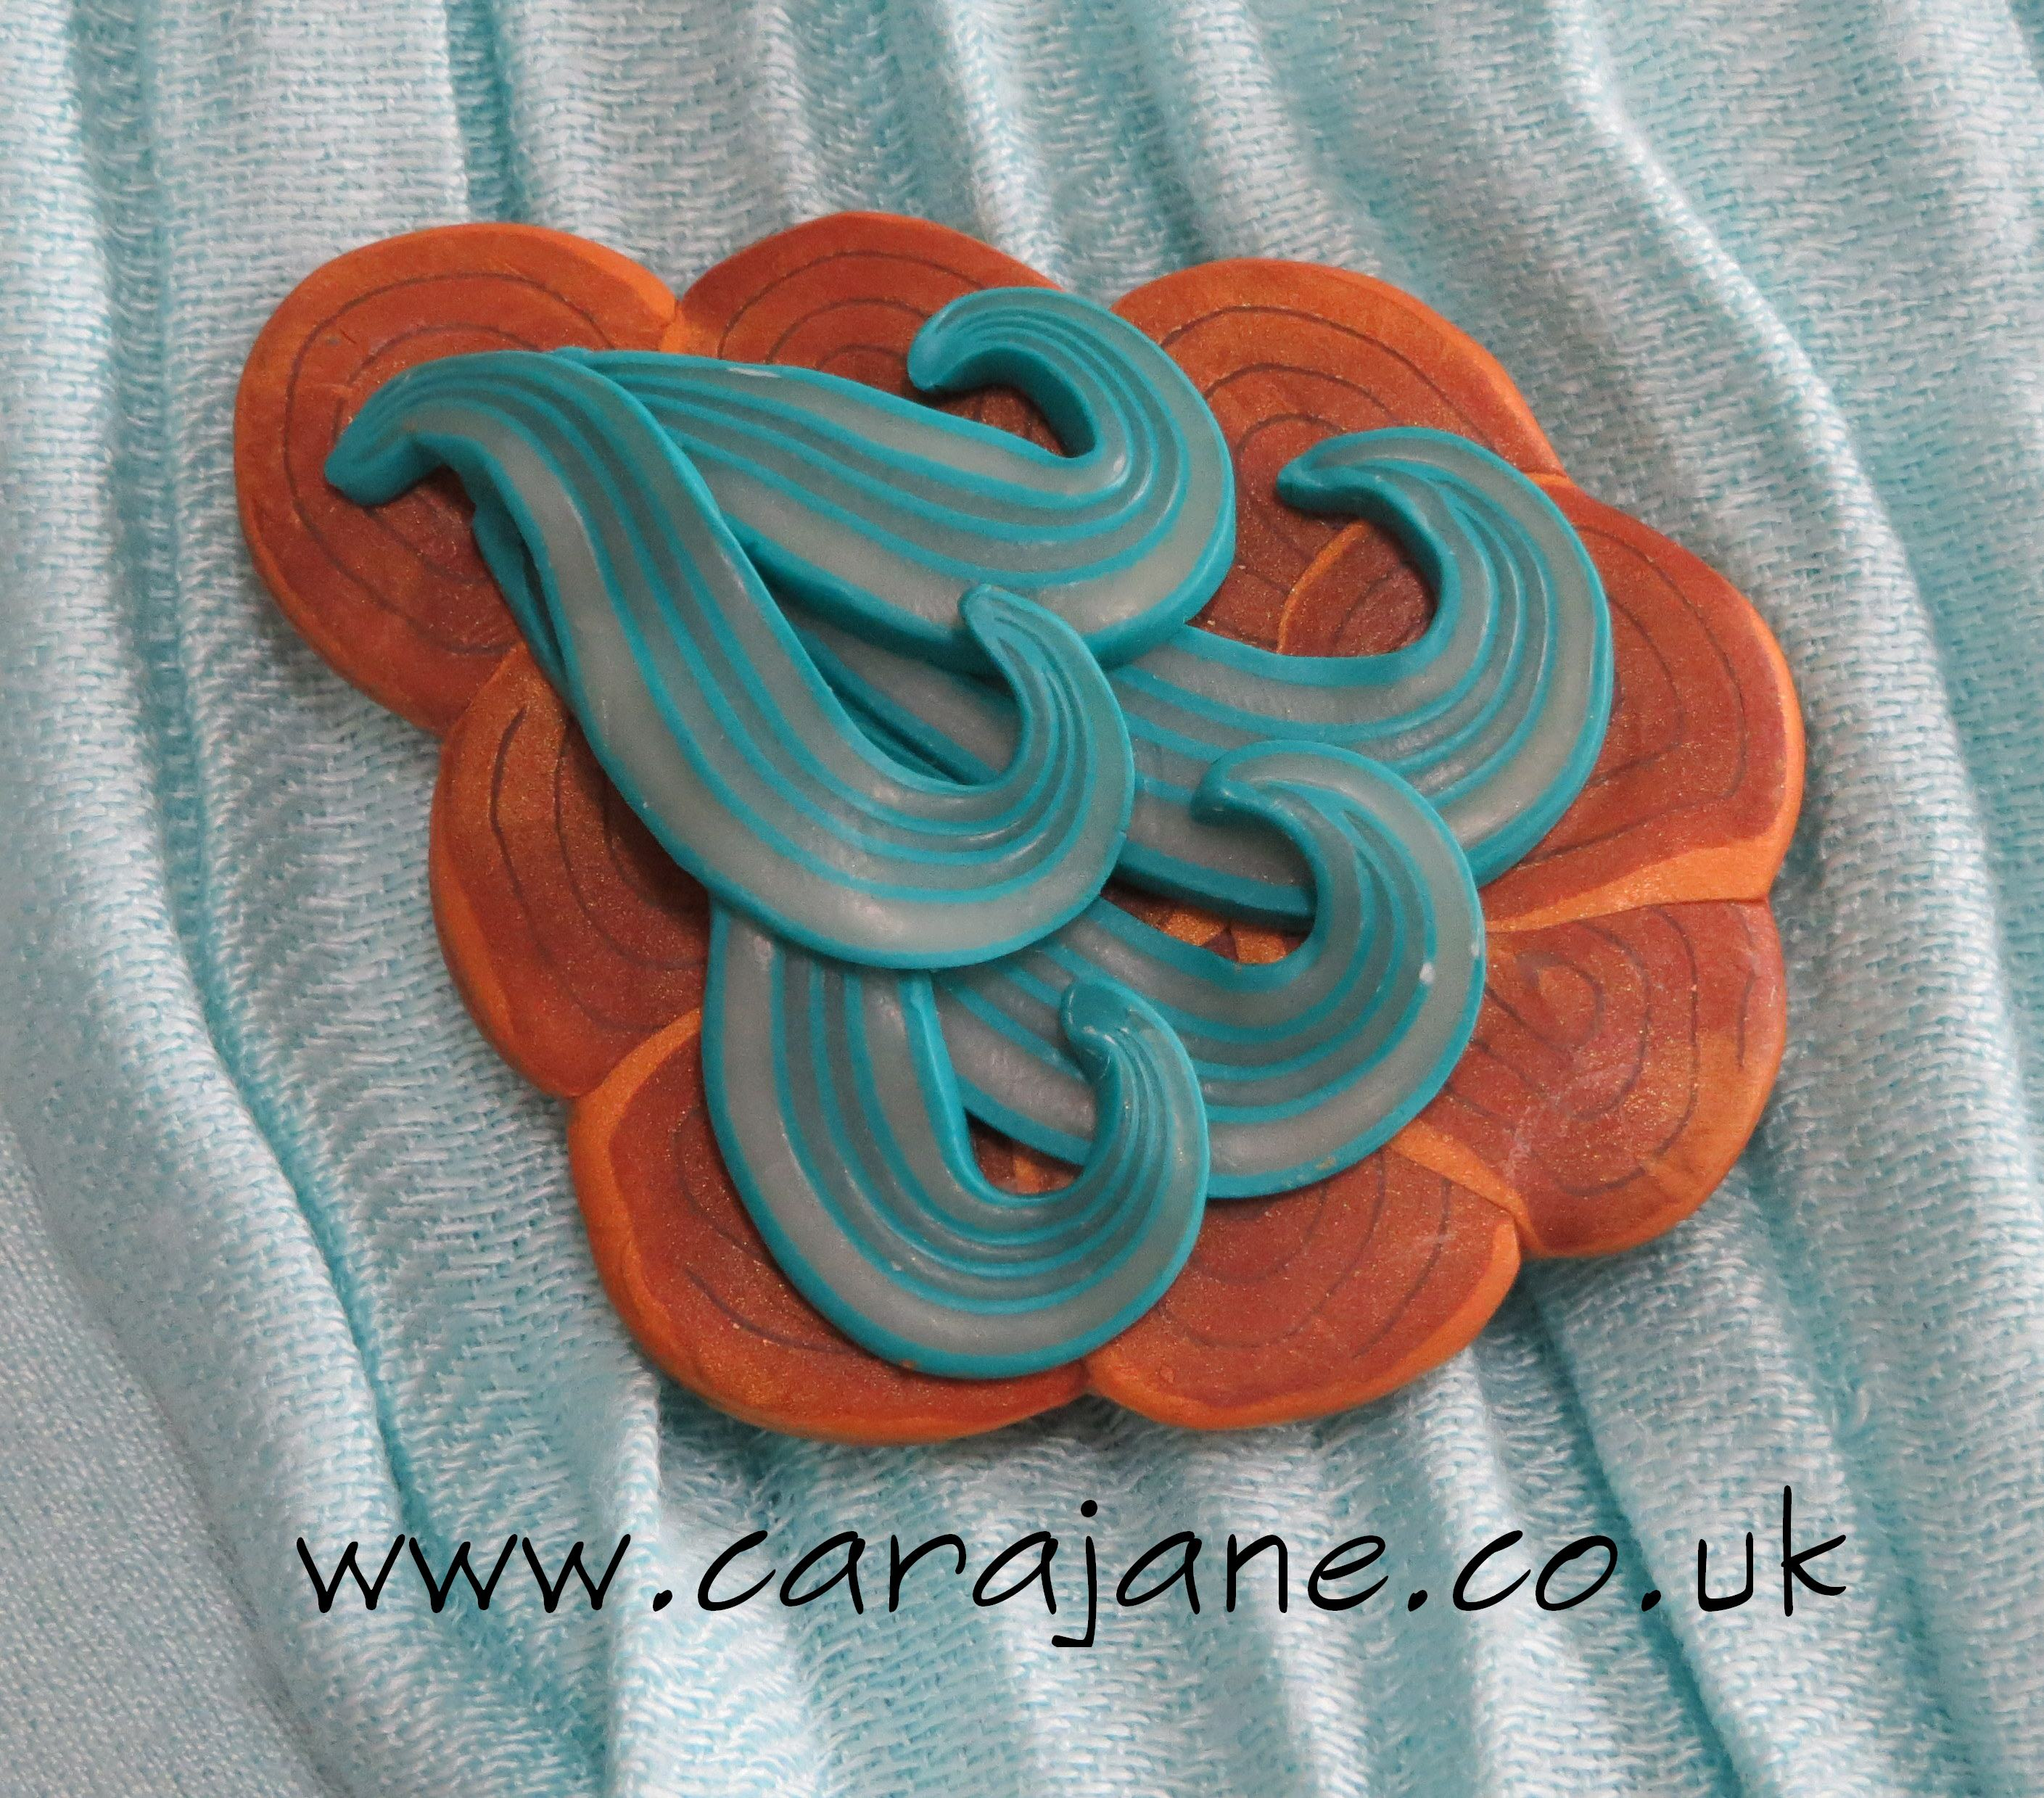 Golden Breath Polymer Brooch by Cara Jane Tutorial in From Polymer To Art Magazine